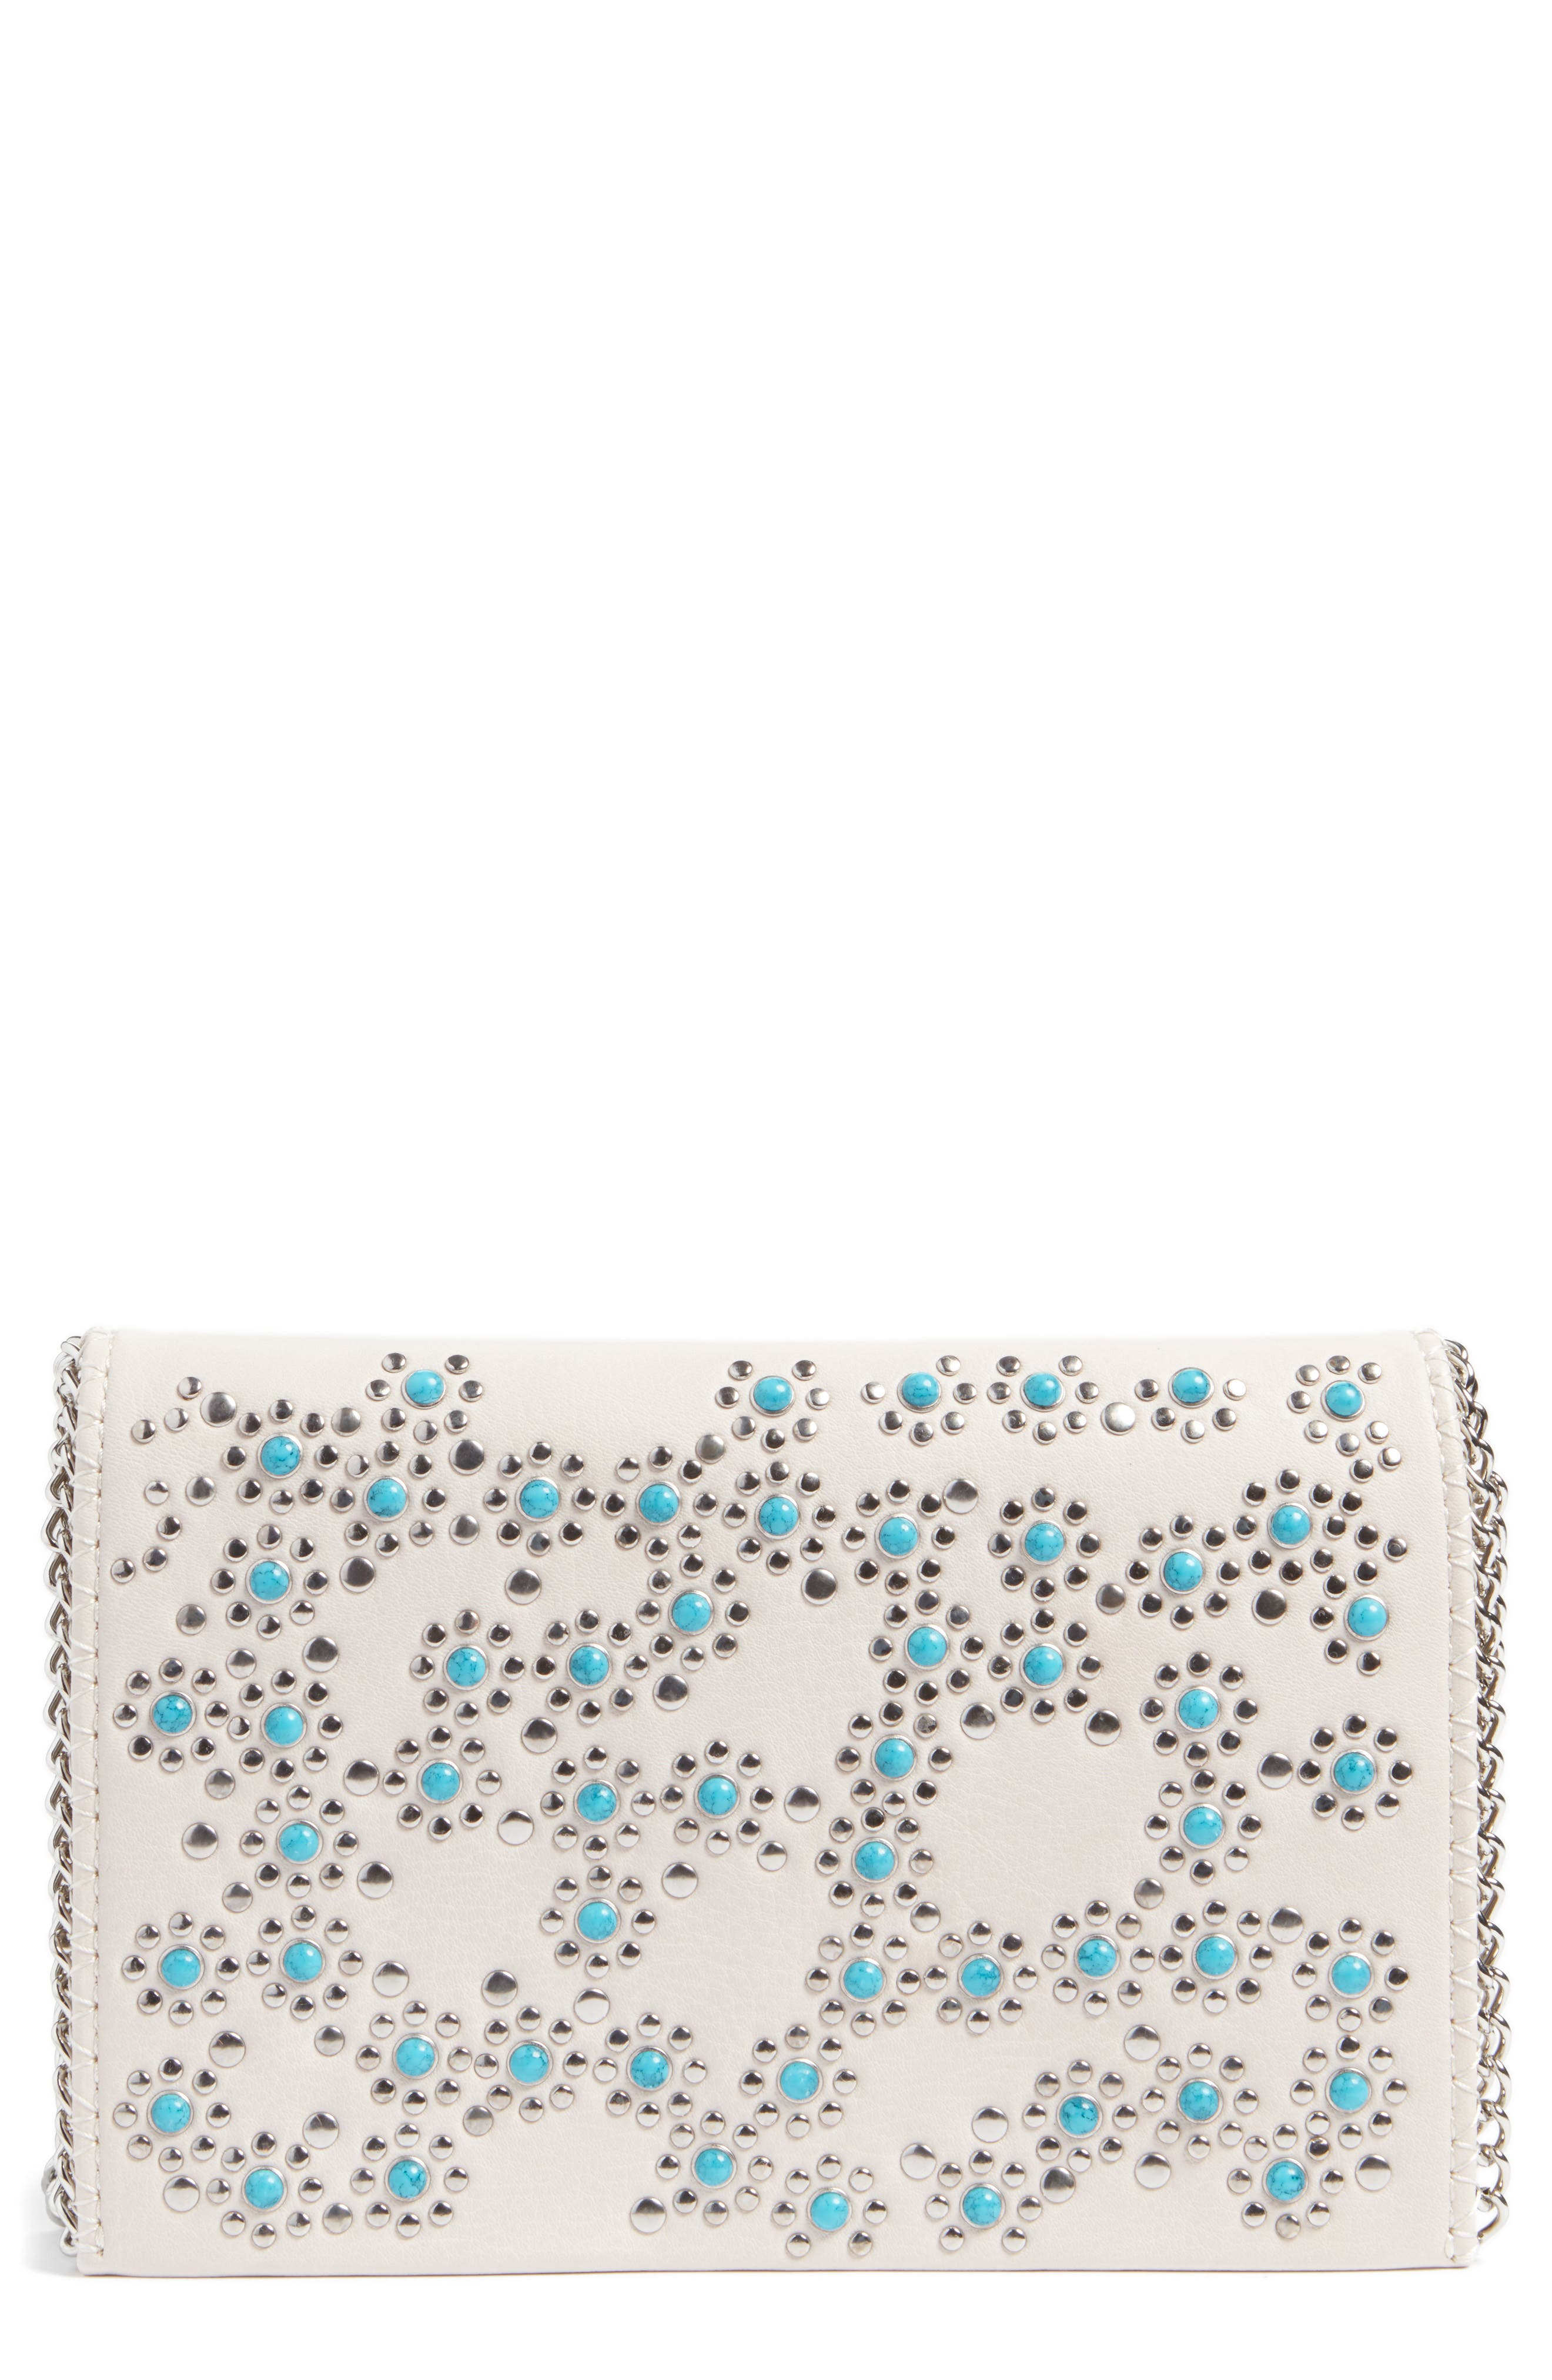 CHELSEA28 Embellished Faux Leather Convertible Clutch